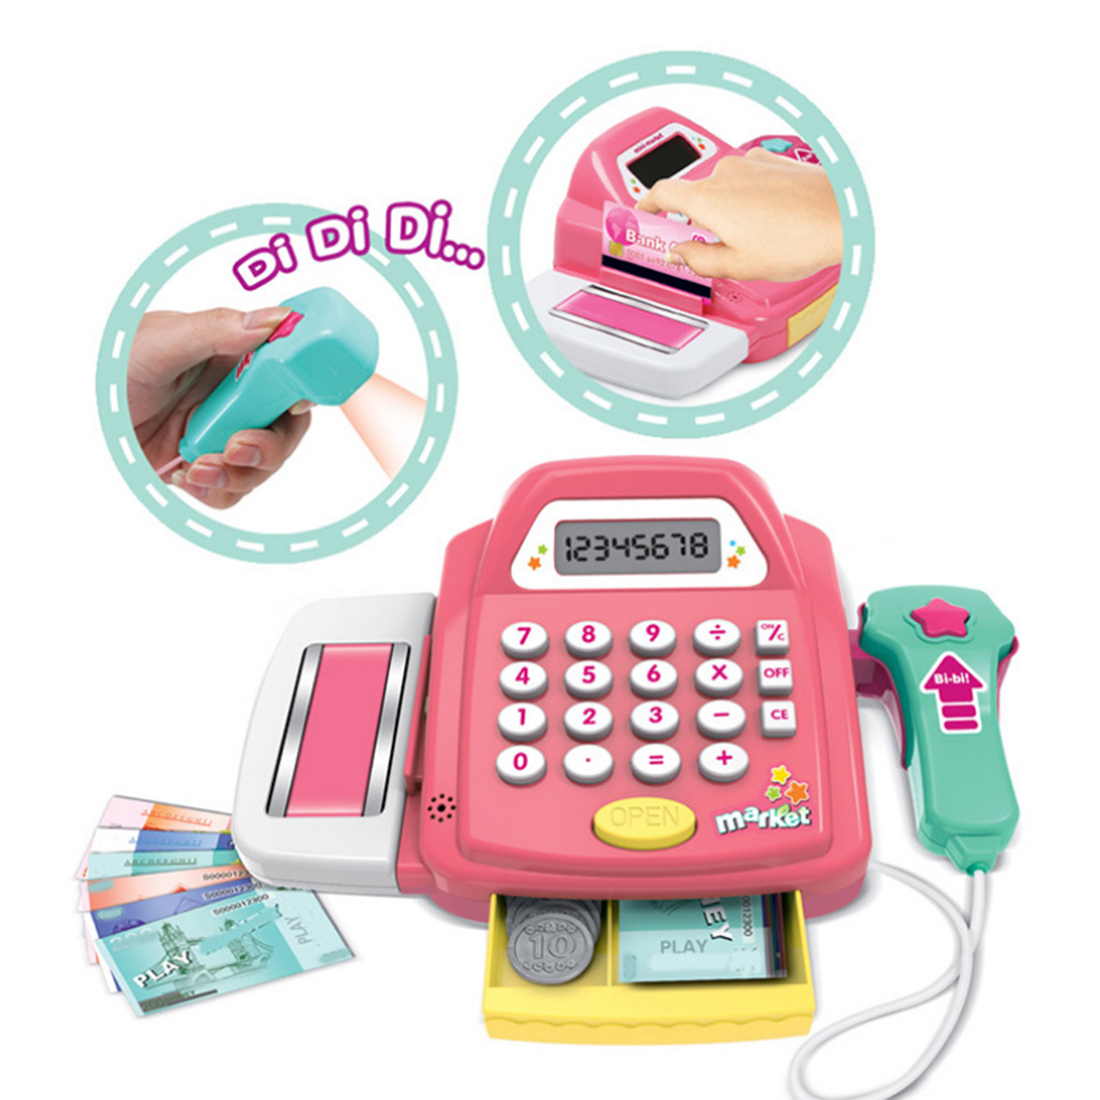 Kids Supermarket Cash Register Electronic Toys with Foods Money Children Learning Education Pretend Play Set Best Christmas Gift Lahore